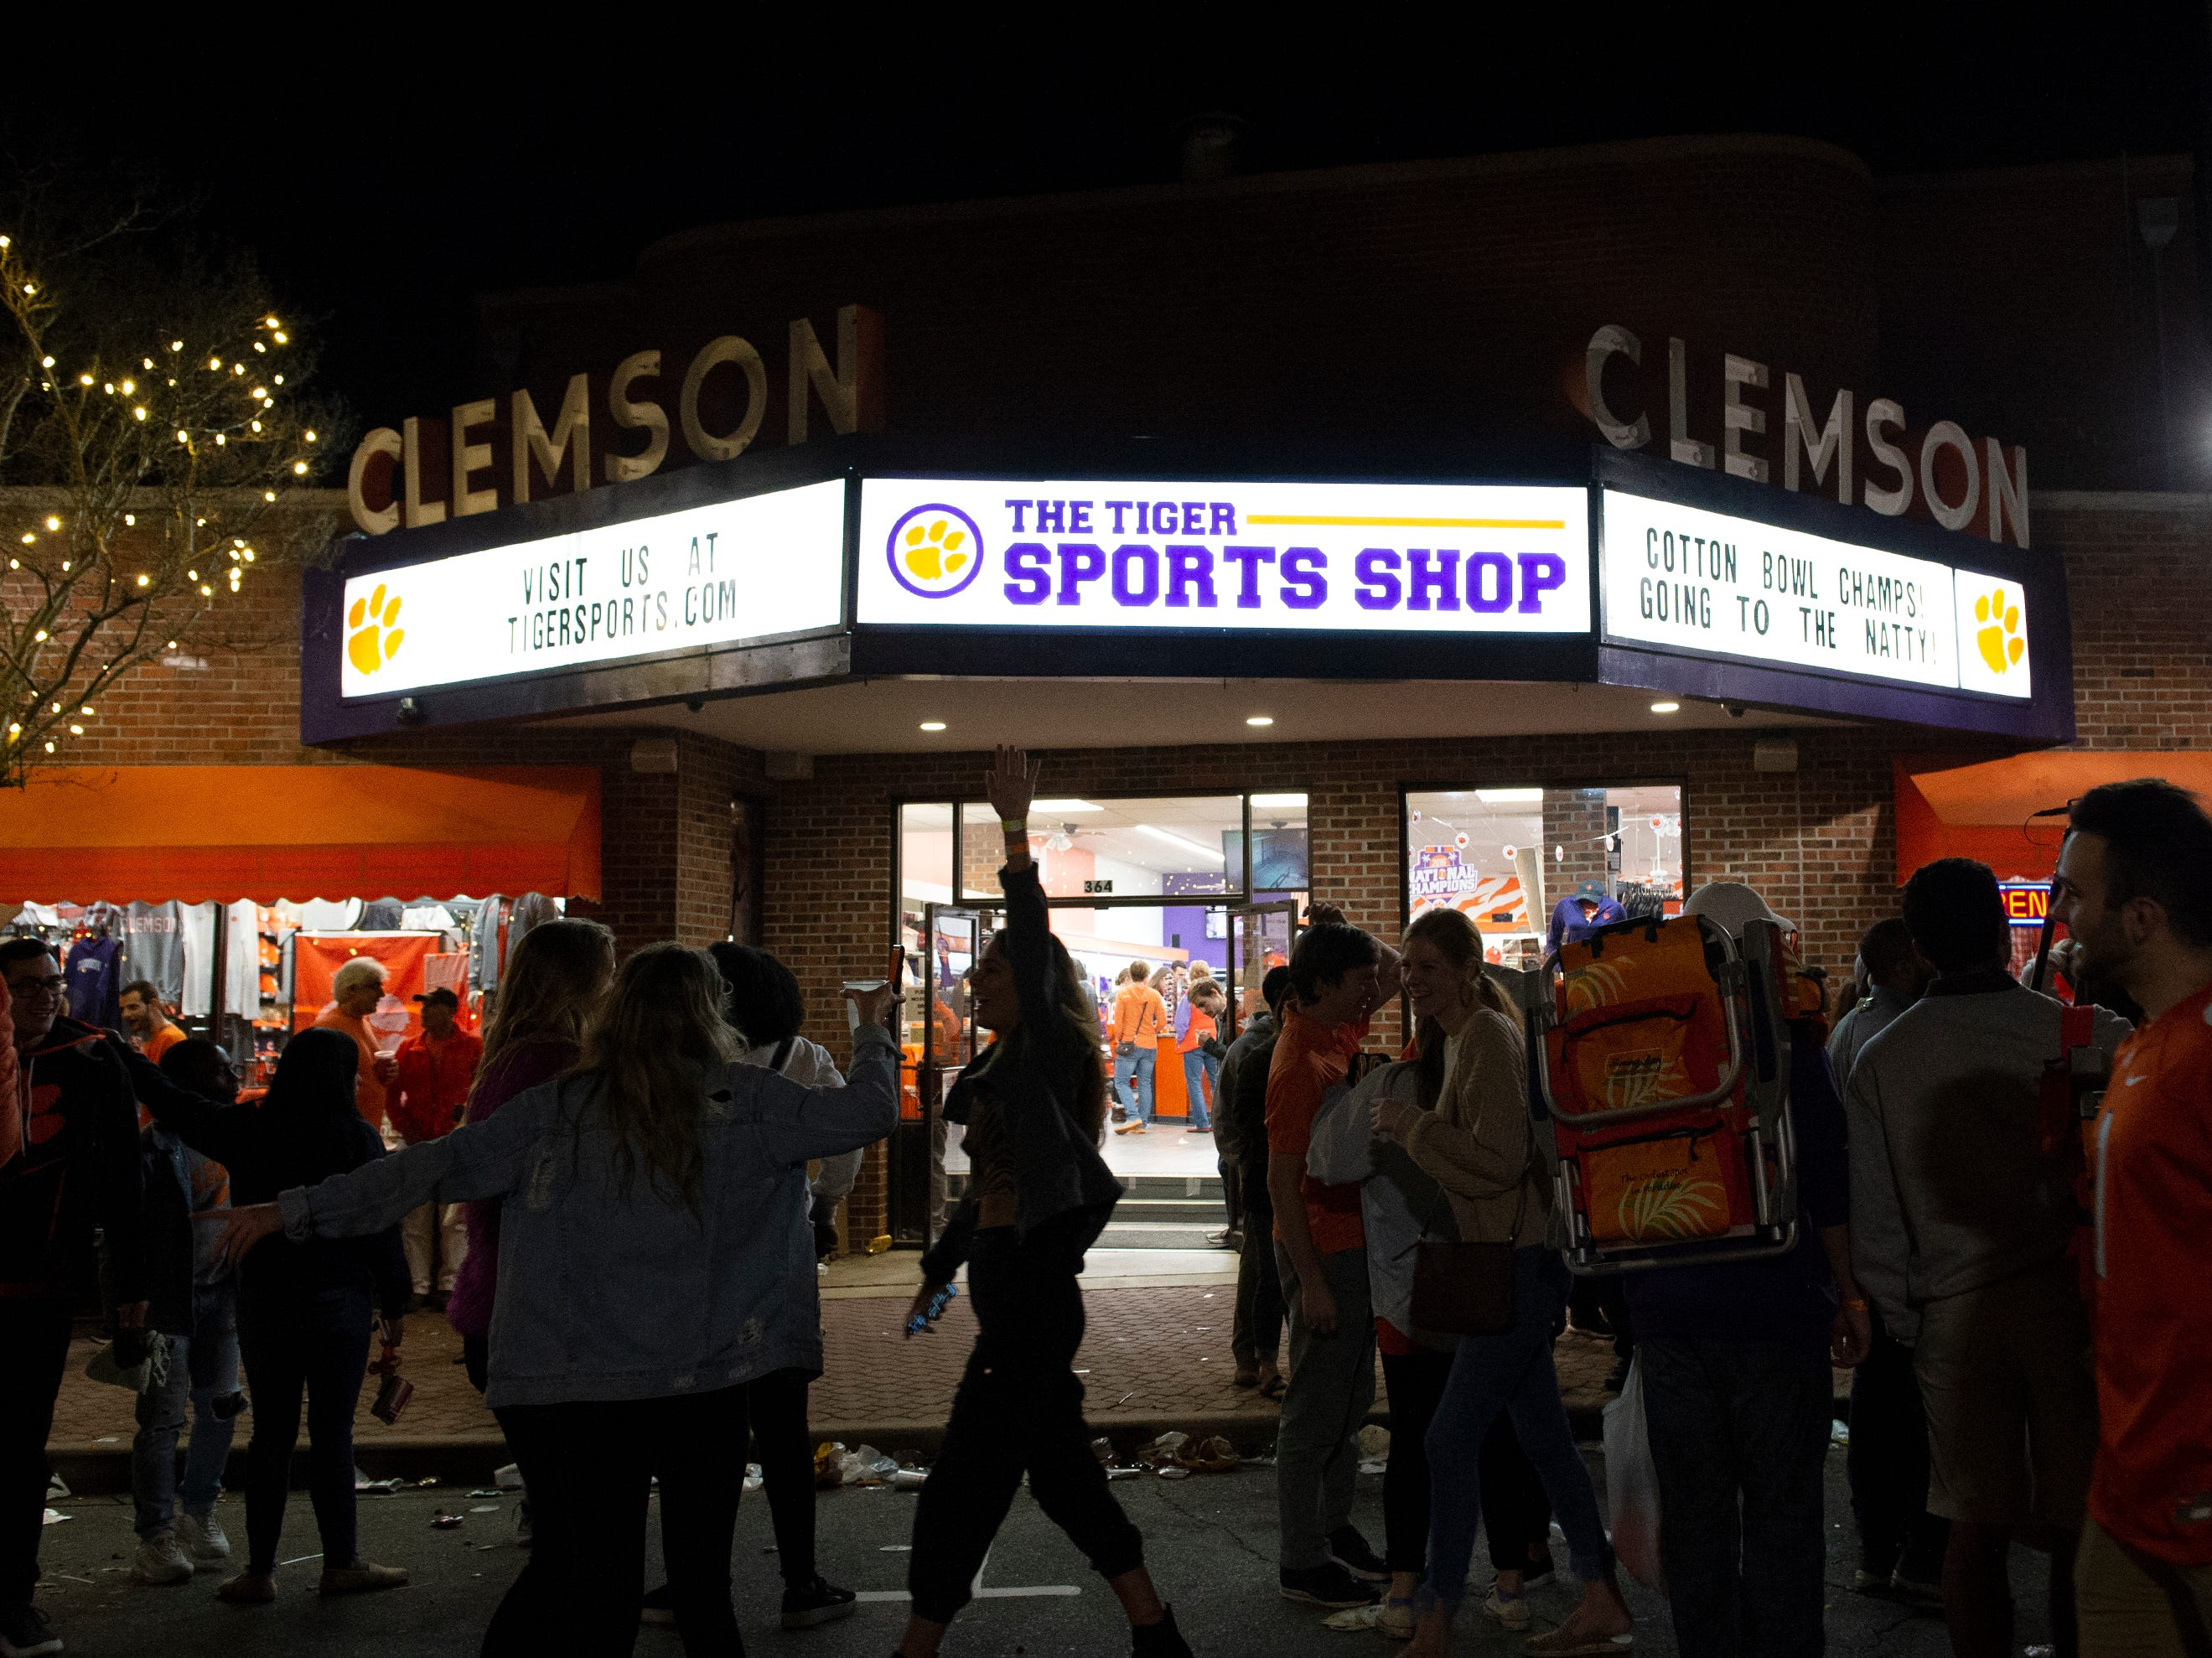 Championship merchandise was up for sale at The Tiger Sports Shop on College Avenue after Clemson defeated Alabama in the College Football Playoff National Championship Monday, Jan. 7, 2019.